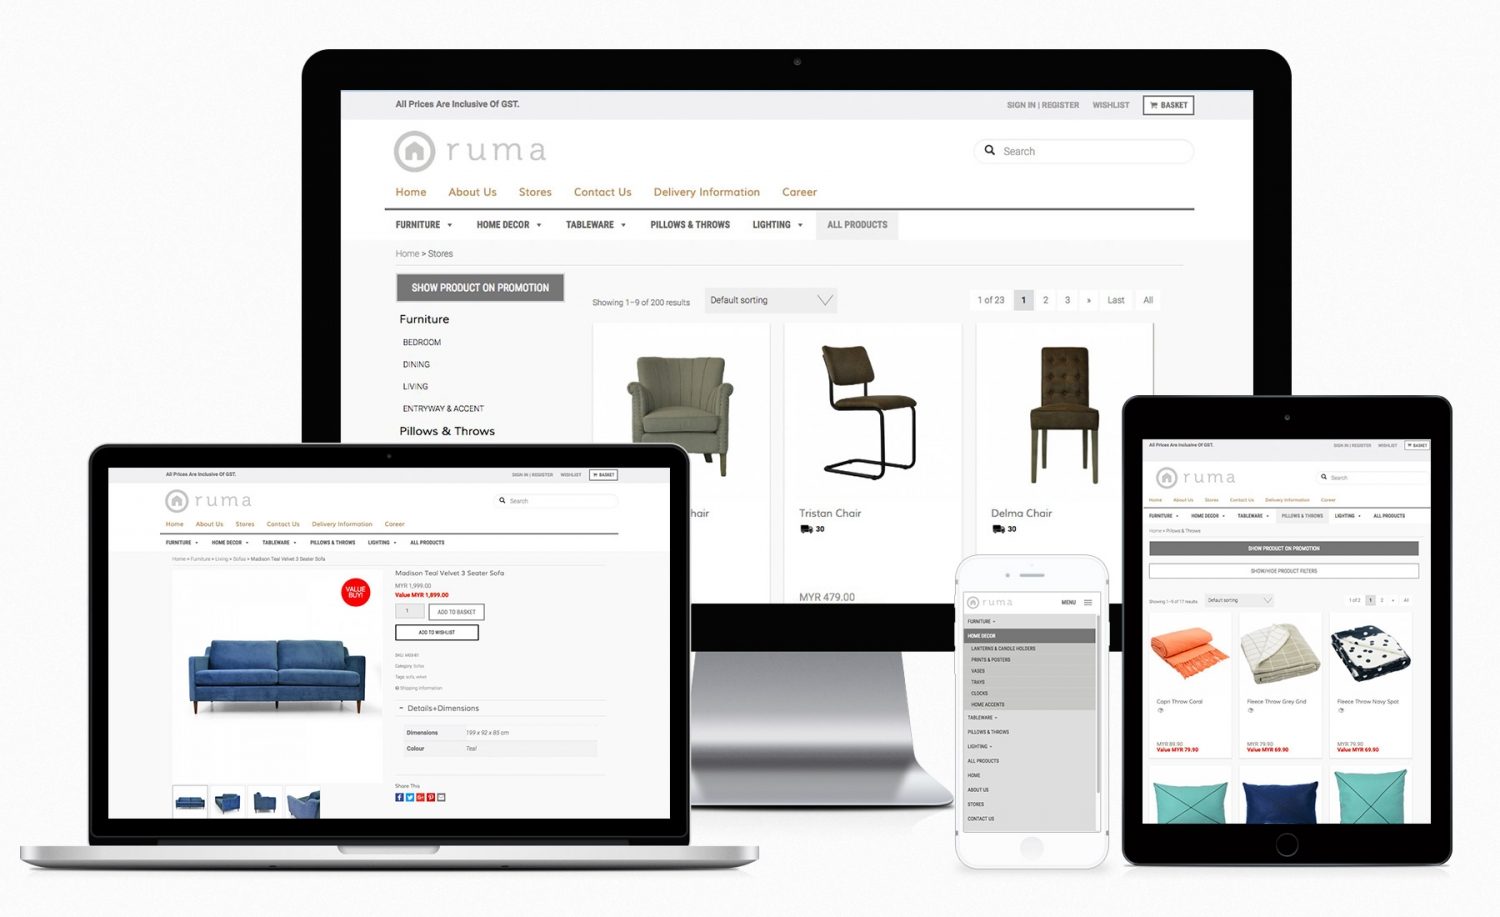 Ruma Home e-commerce website design and setup